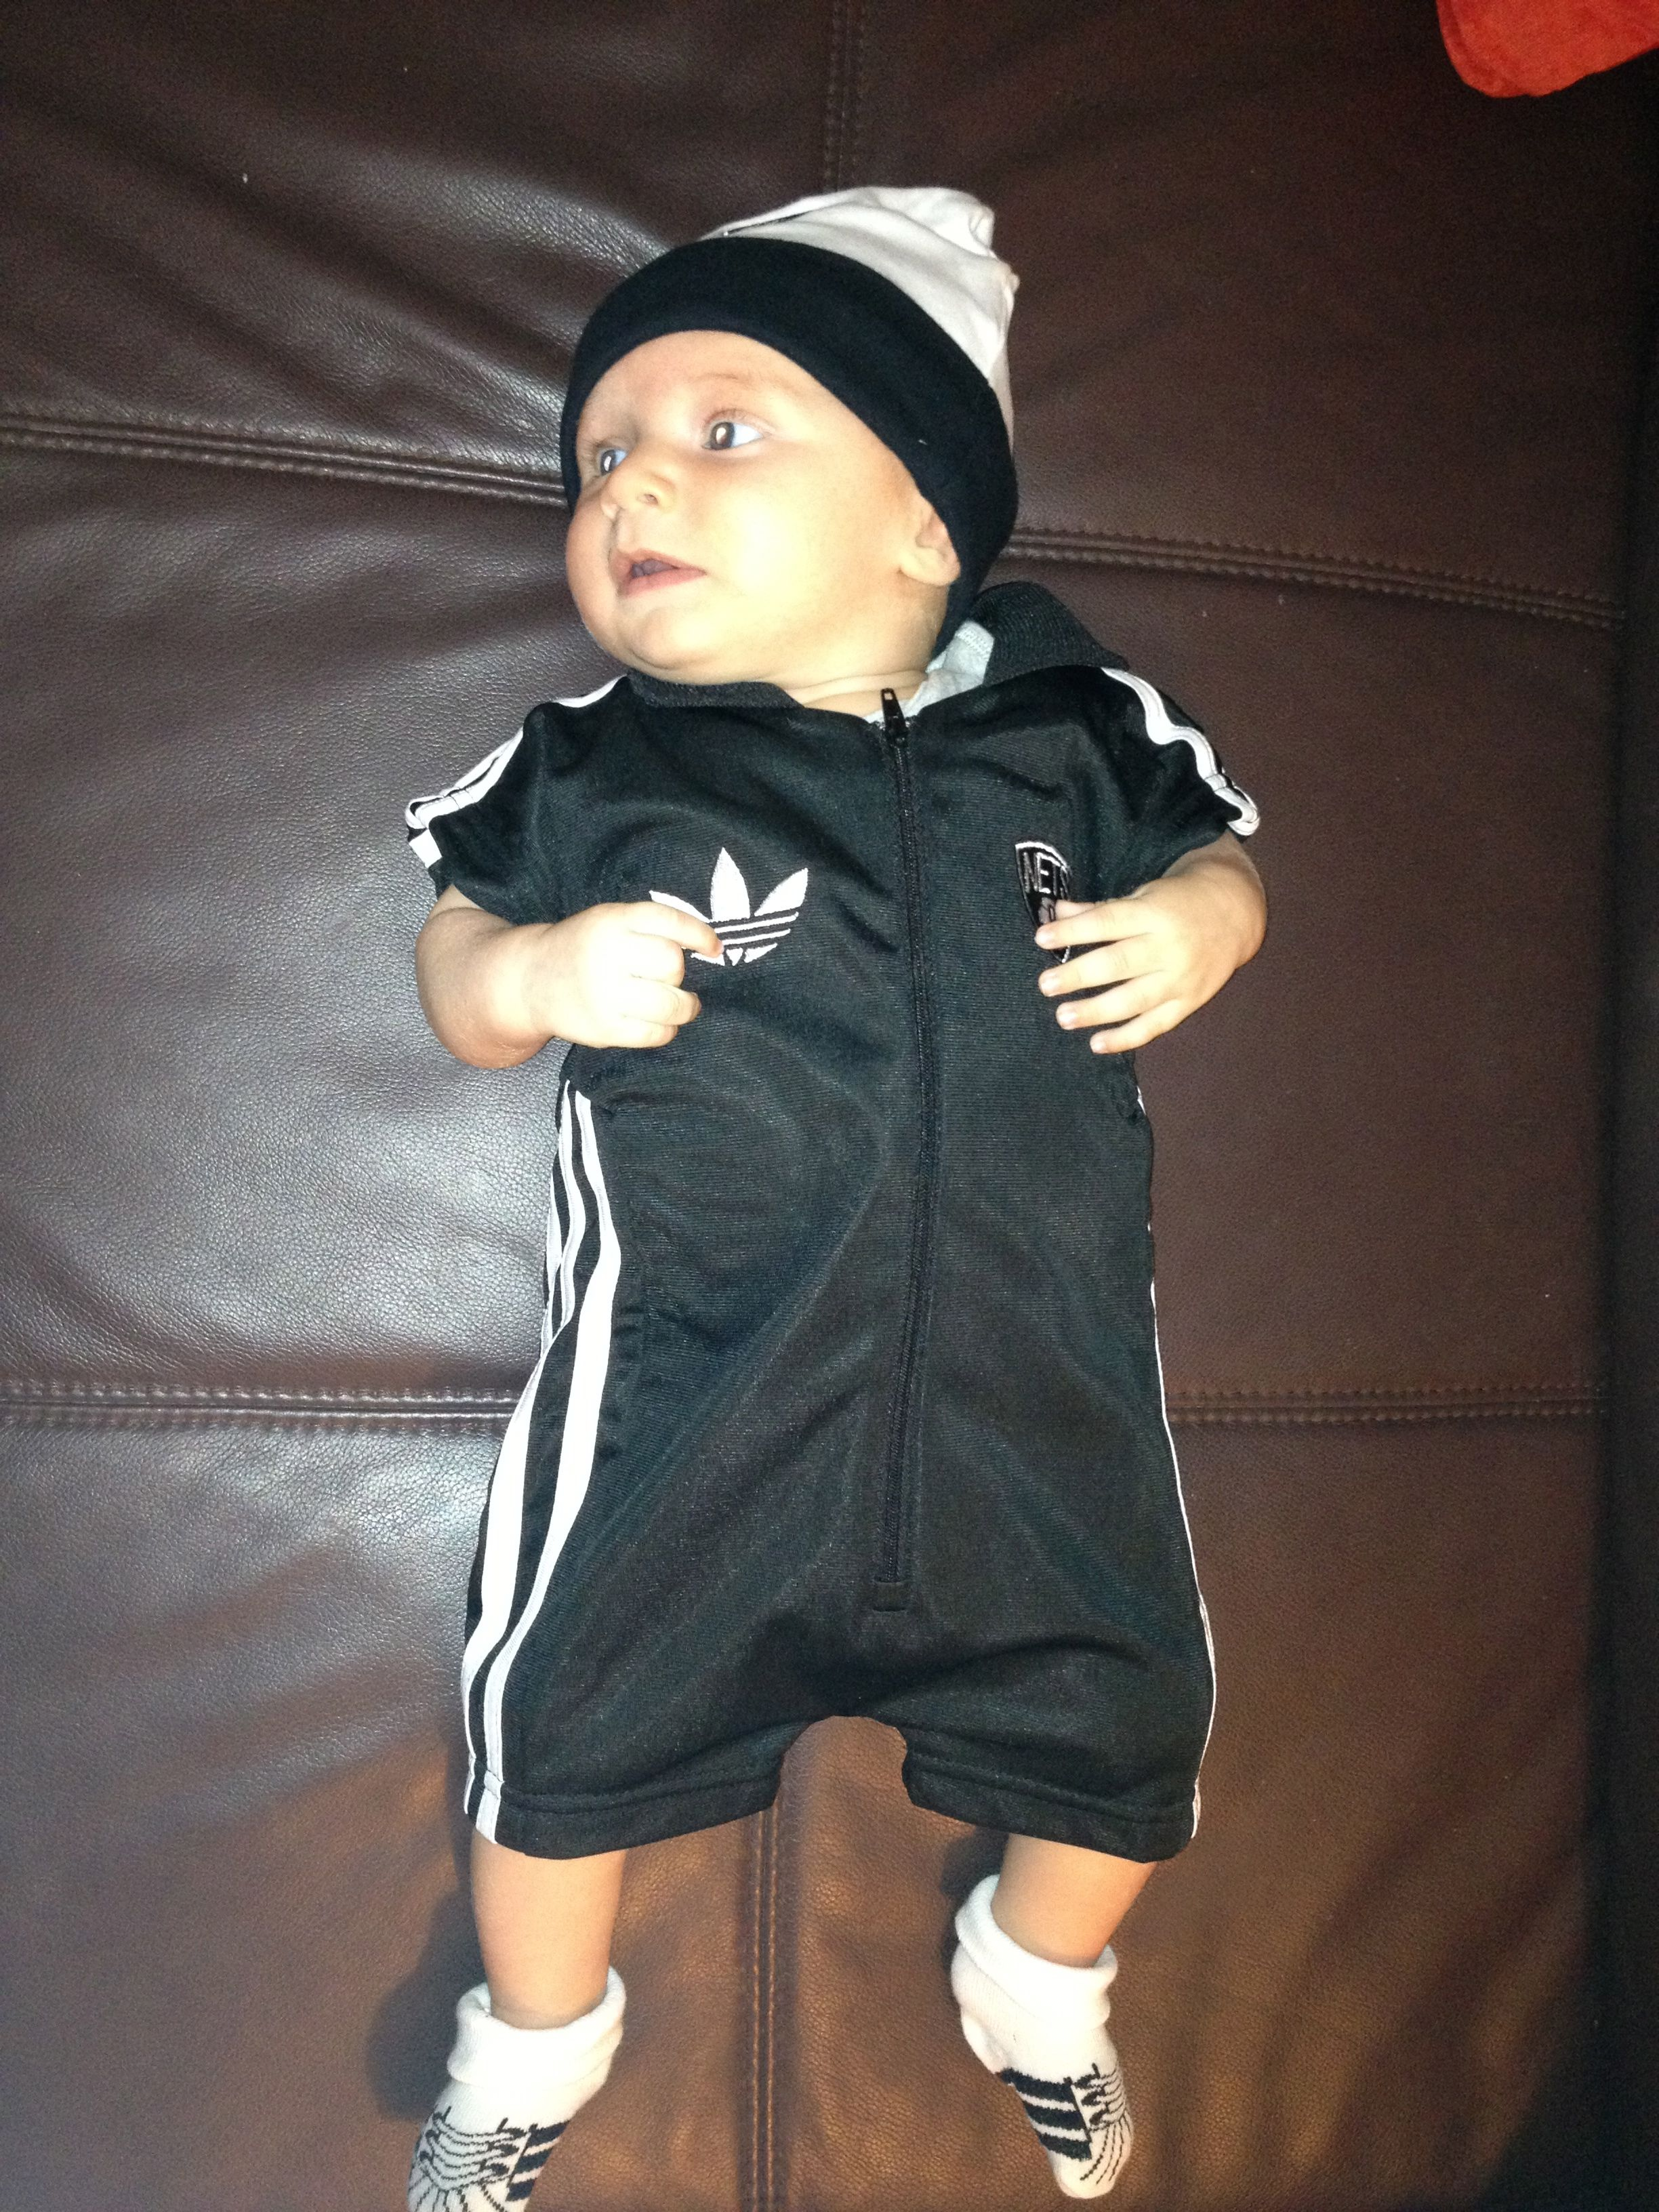 Toddler Tracksuits. invalid category id. Toddler Tracksuits. Showing 3 of 3 results that match your query. Search Product Result. We focused on the bestselling products customers like you want most in categories like Baby, Clothing, Electronics and Health & Beauty. Marketplace items.